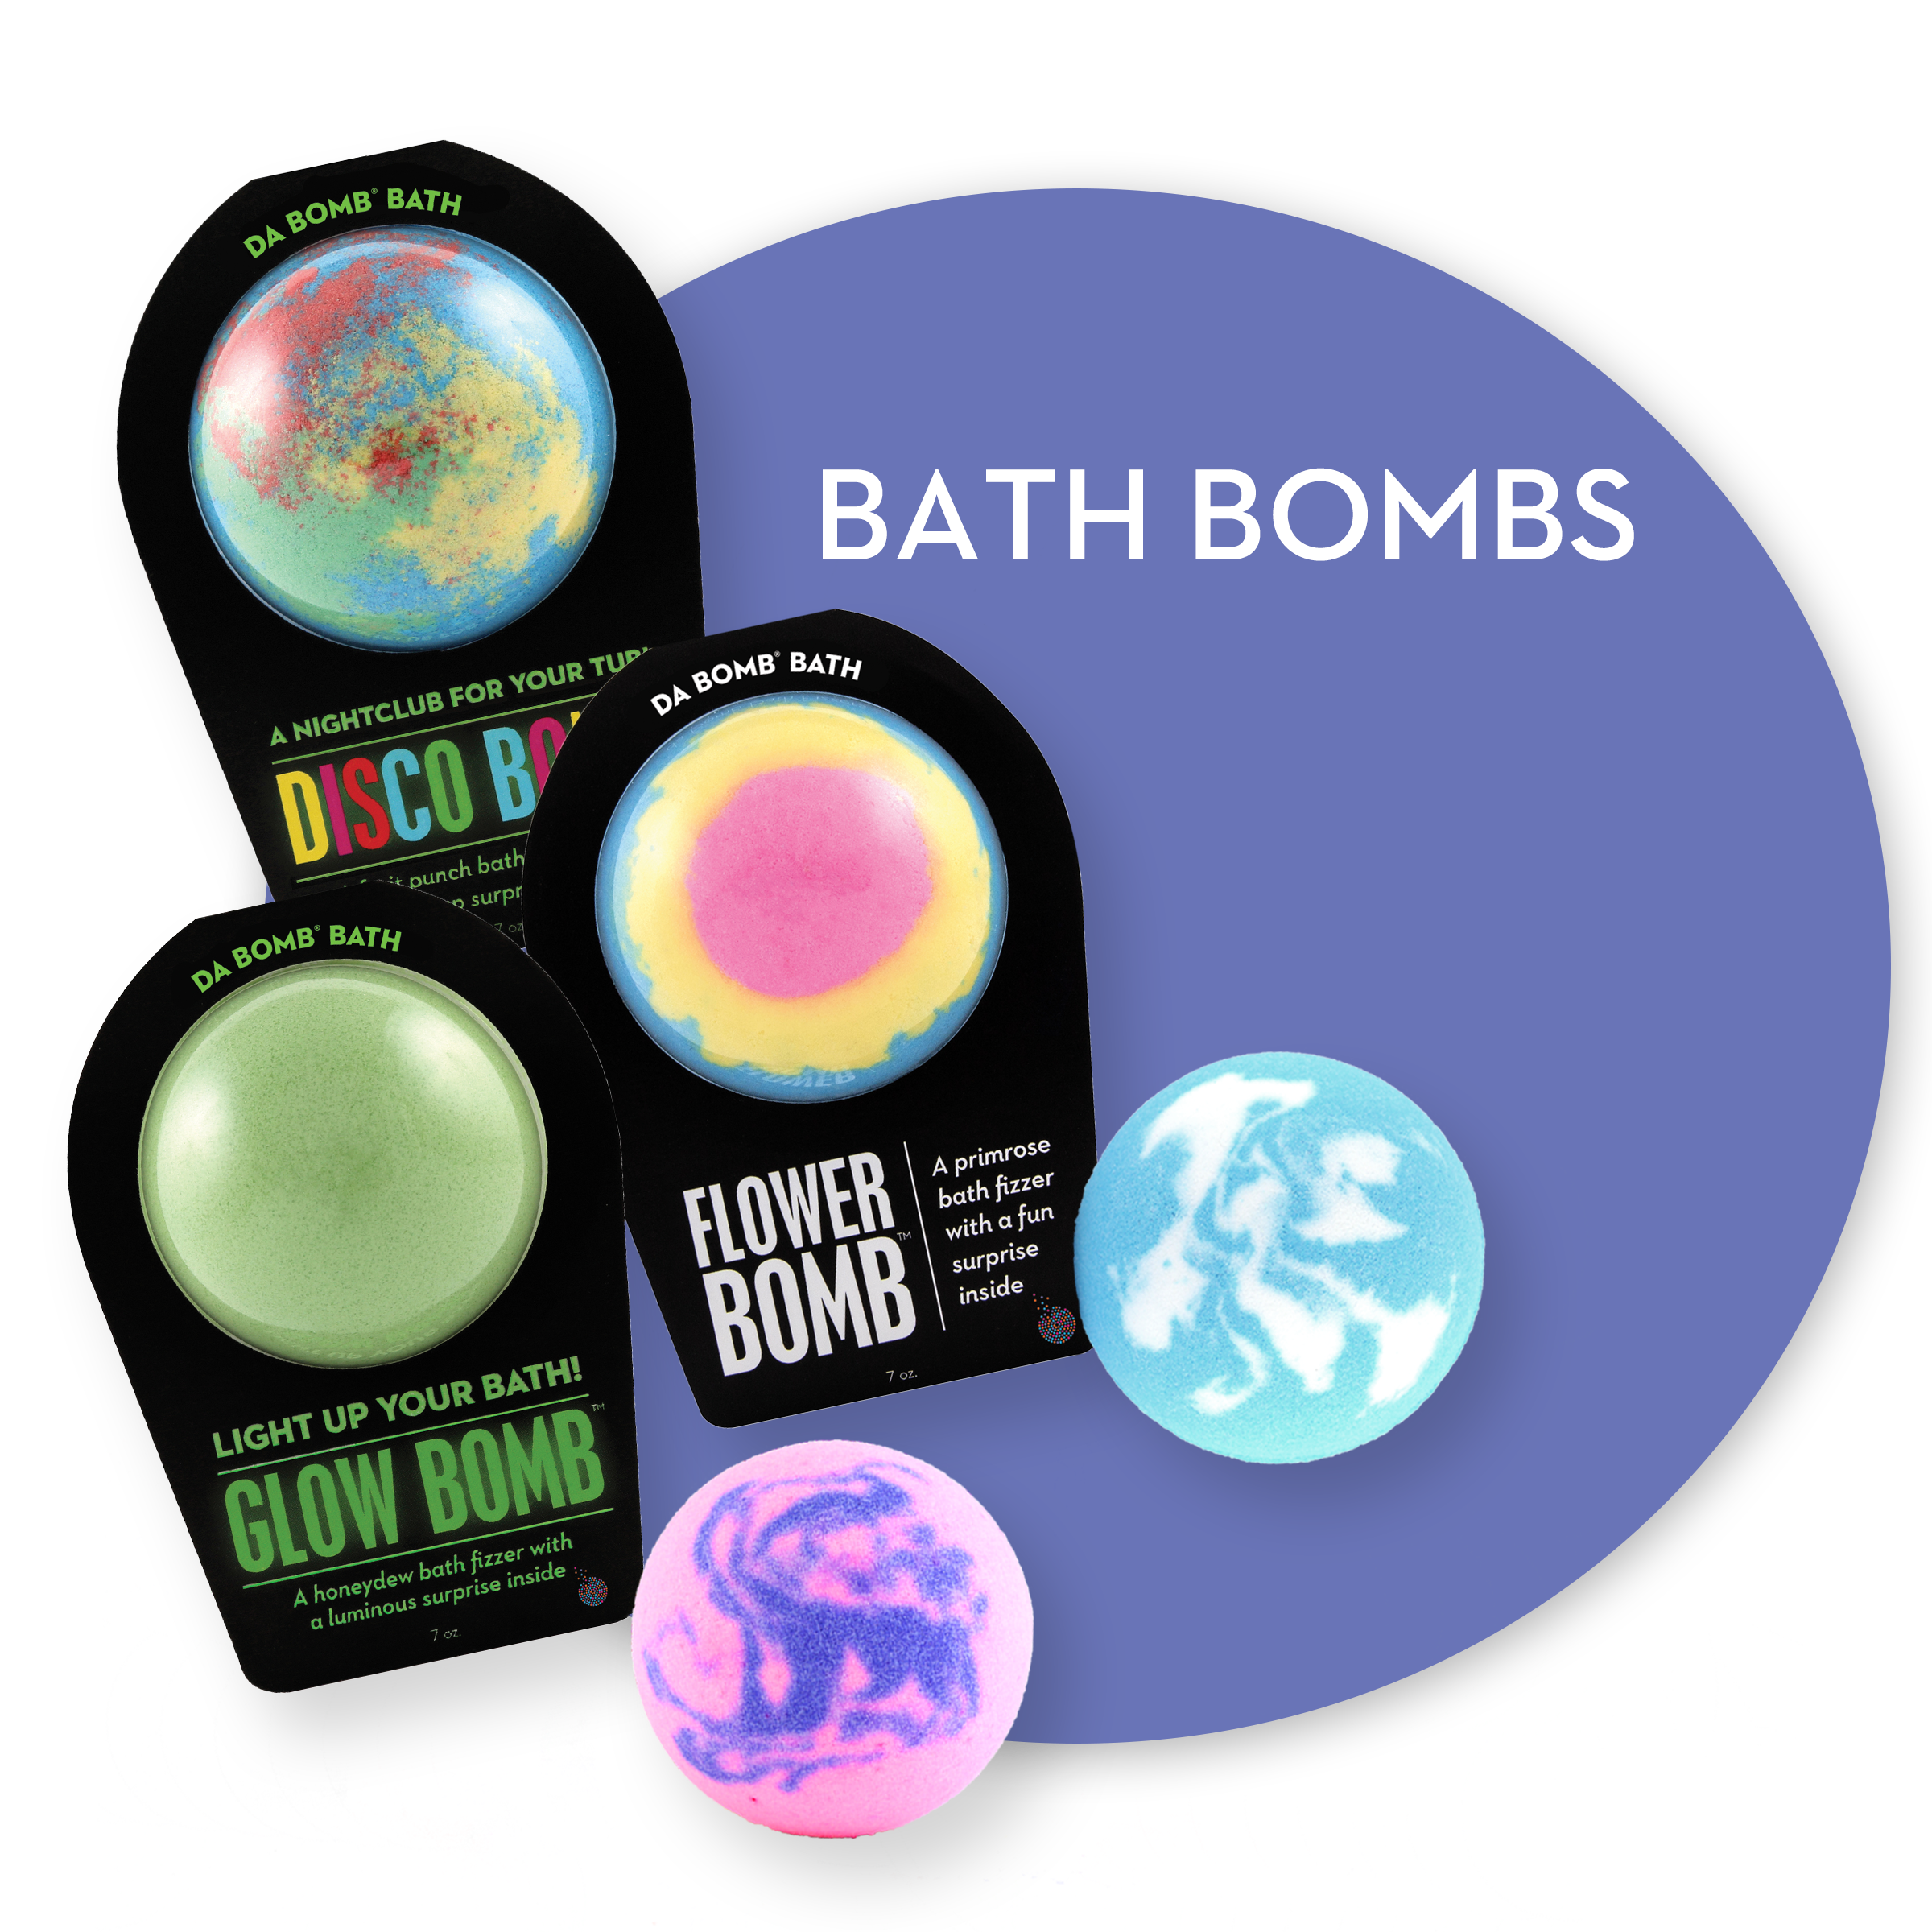 Packaged and unpackaged bath bombs. Links to Bath Bombs page.